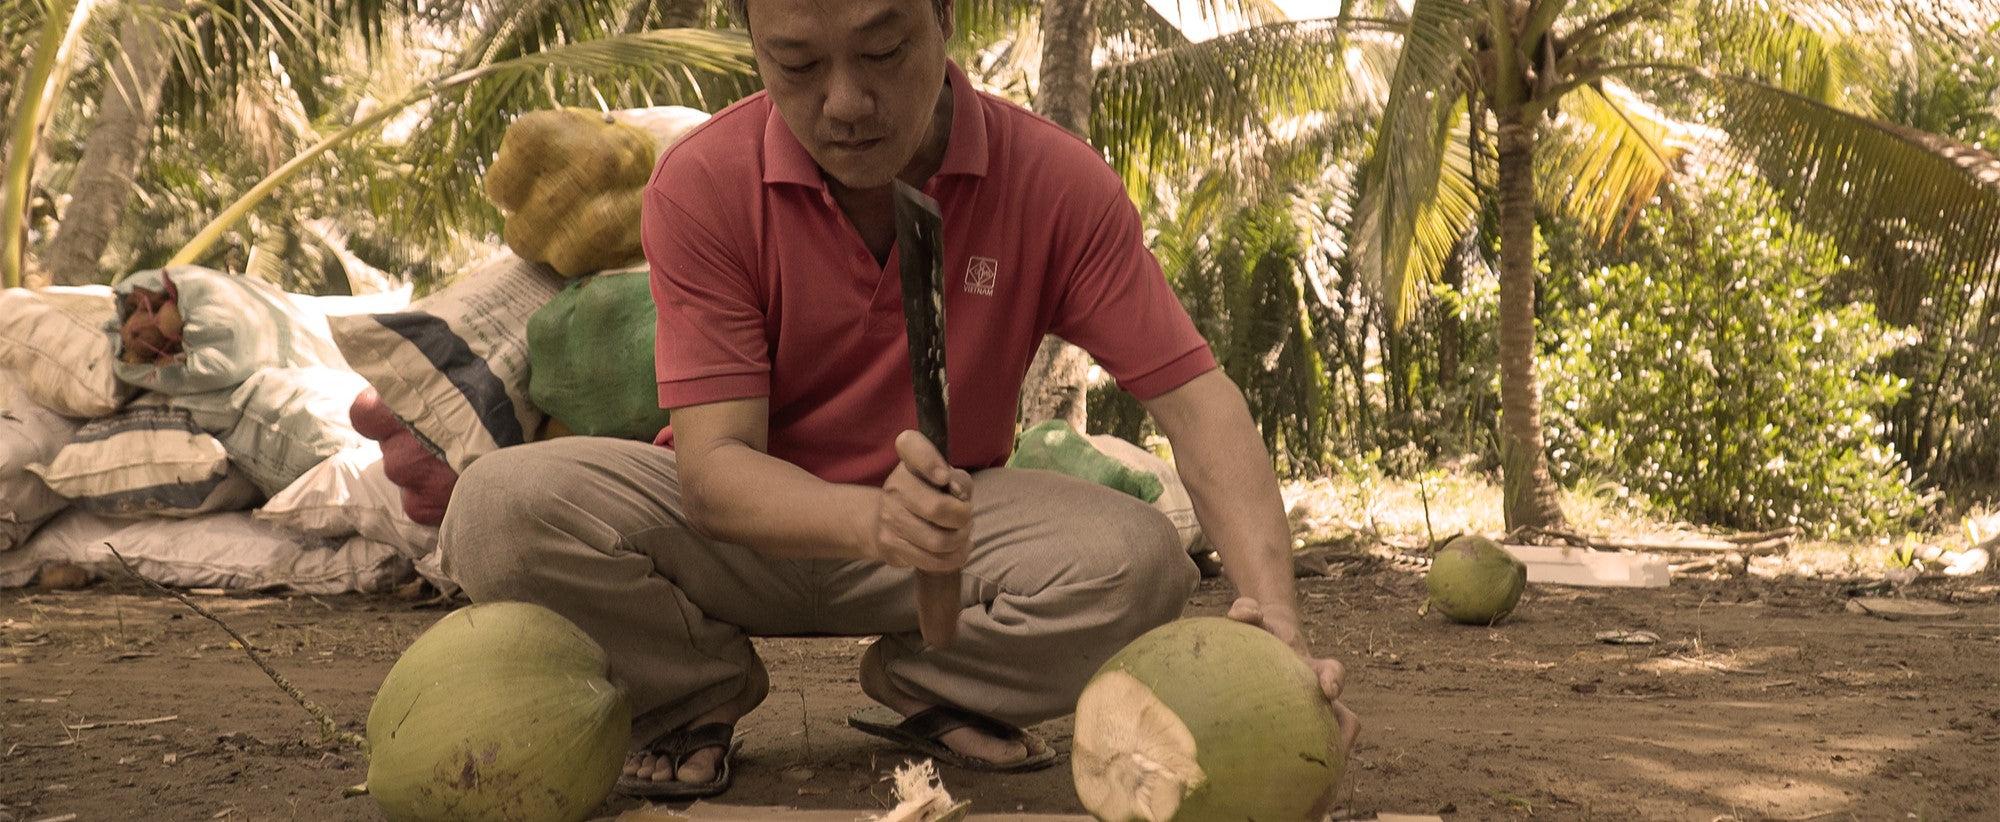 A Vietnamese man teaches us how to open a coconut.